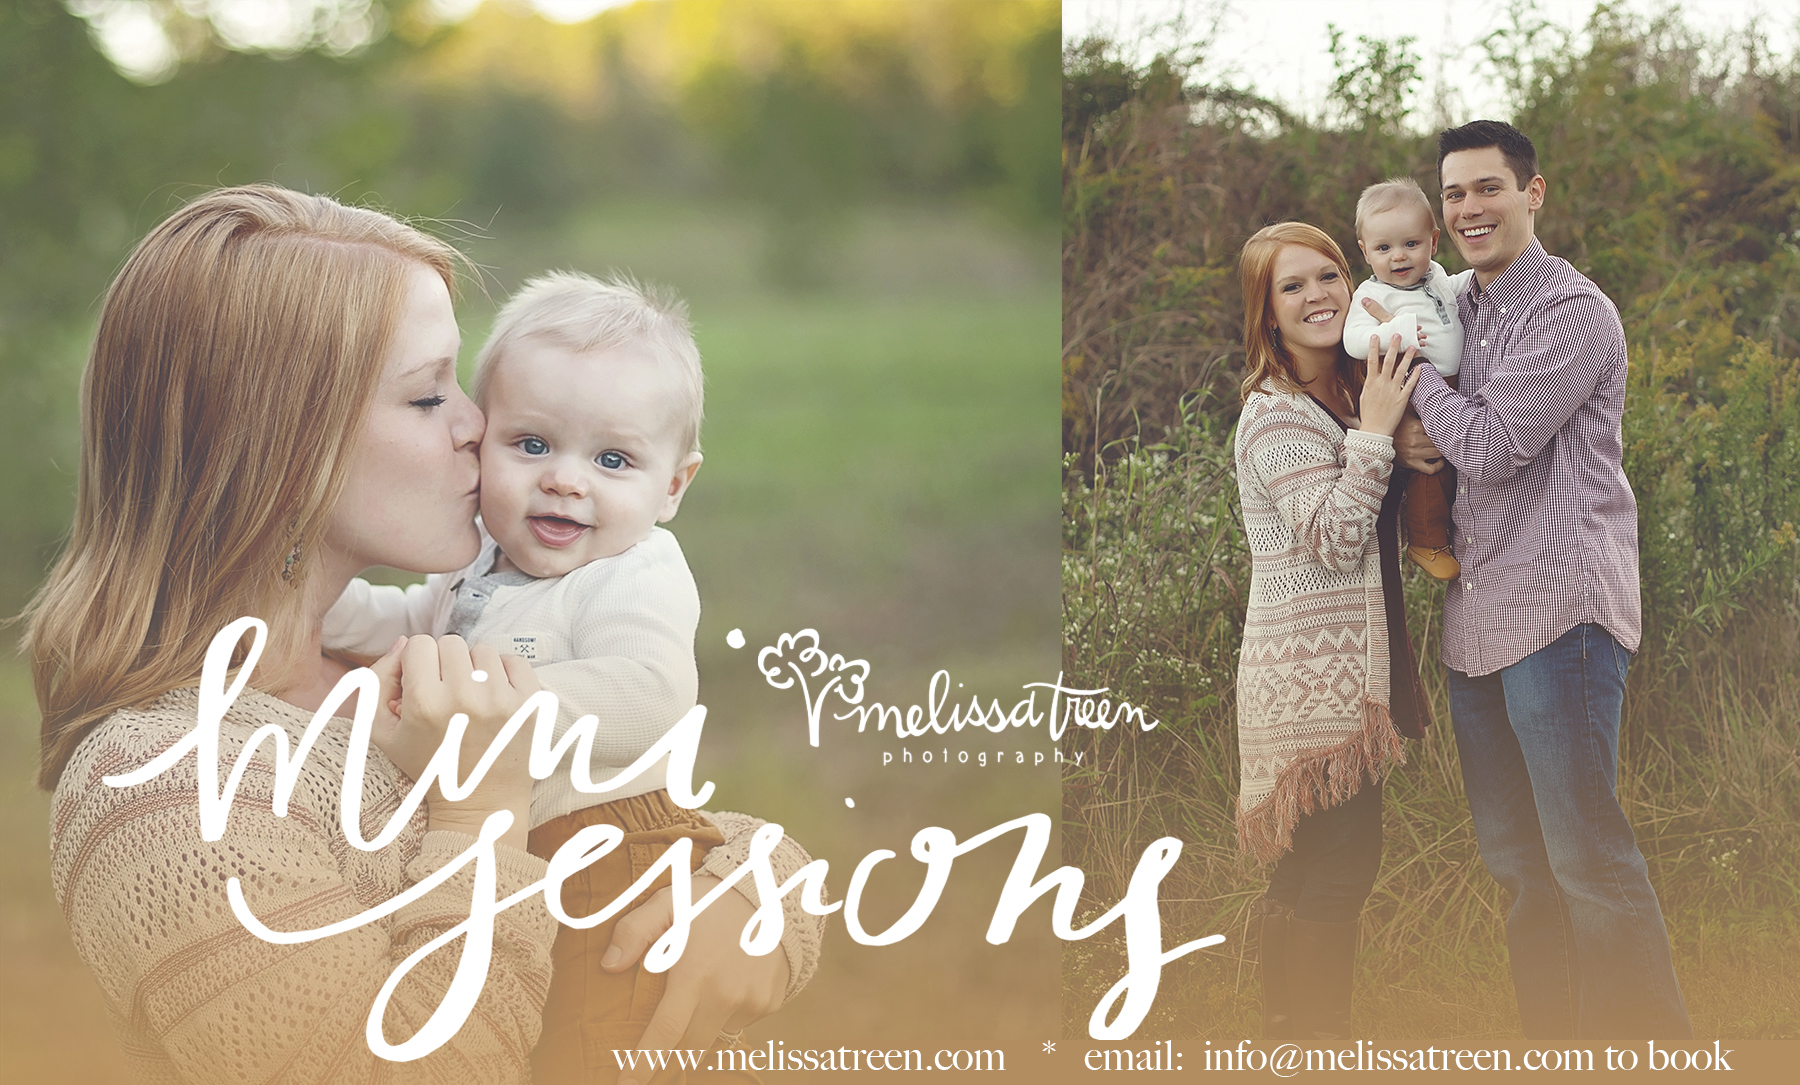 We have opened up a few select dates in our popular Fall photography calendar for Fall Mini Sessions ... these are very limited and will book quickly ... email us to reserve your spot!